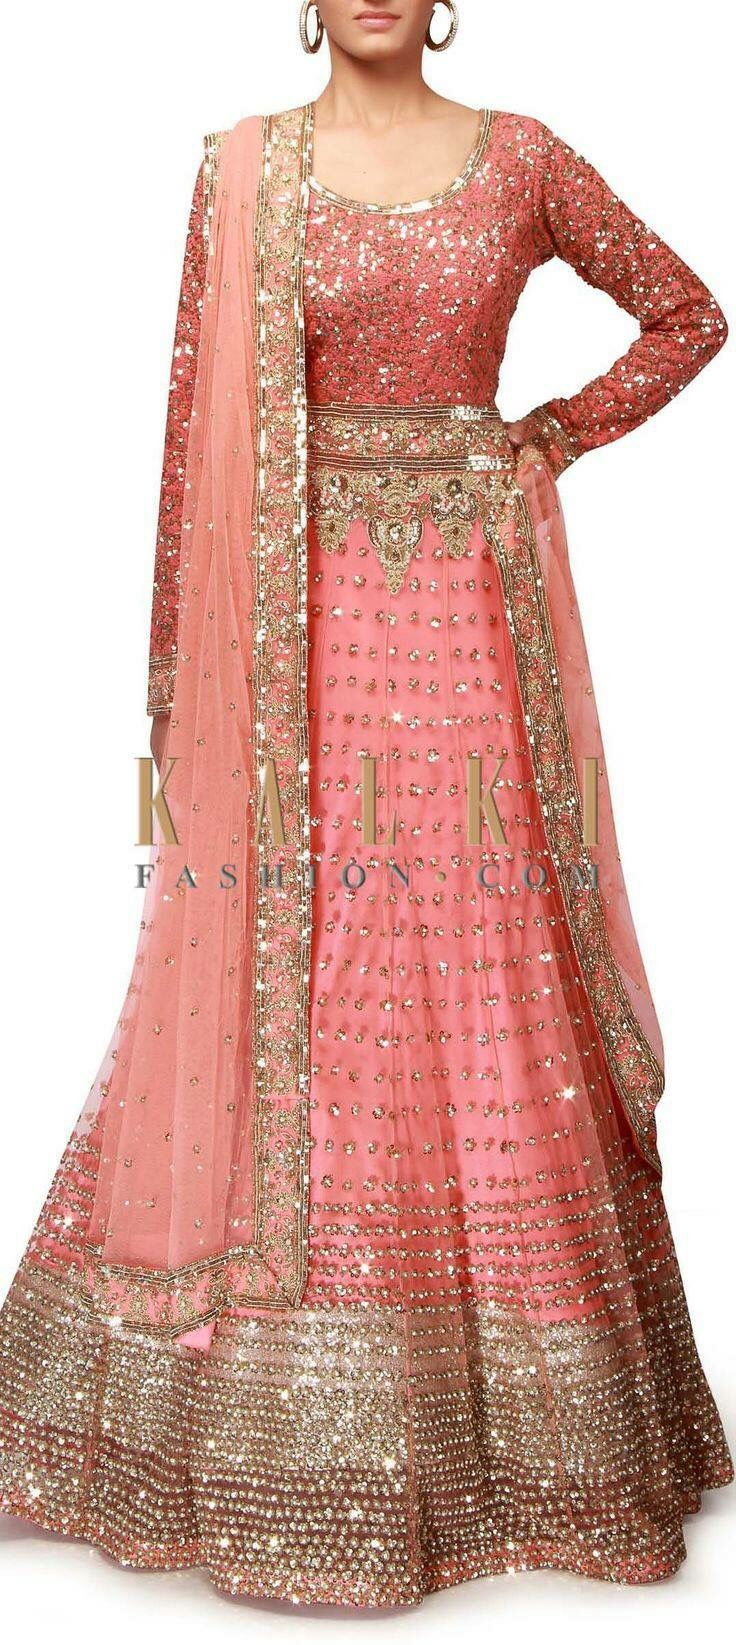 My choice for the patil twin\'s Indian dress in Harry Potter movie\'s ...